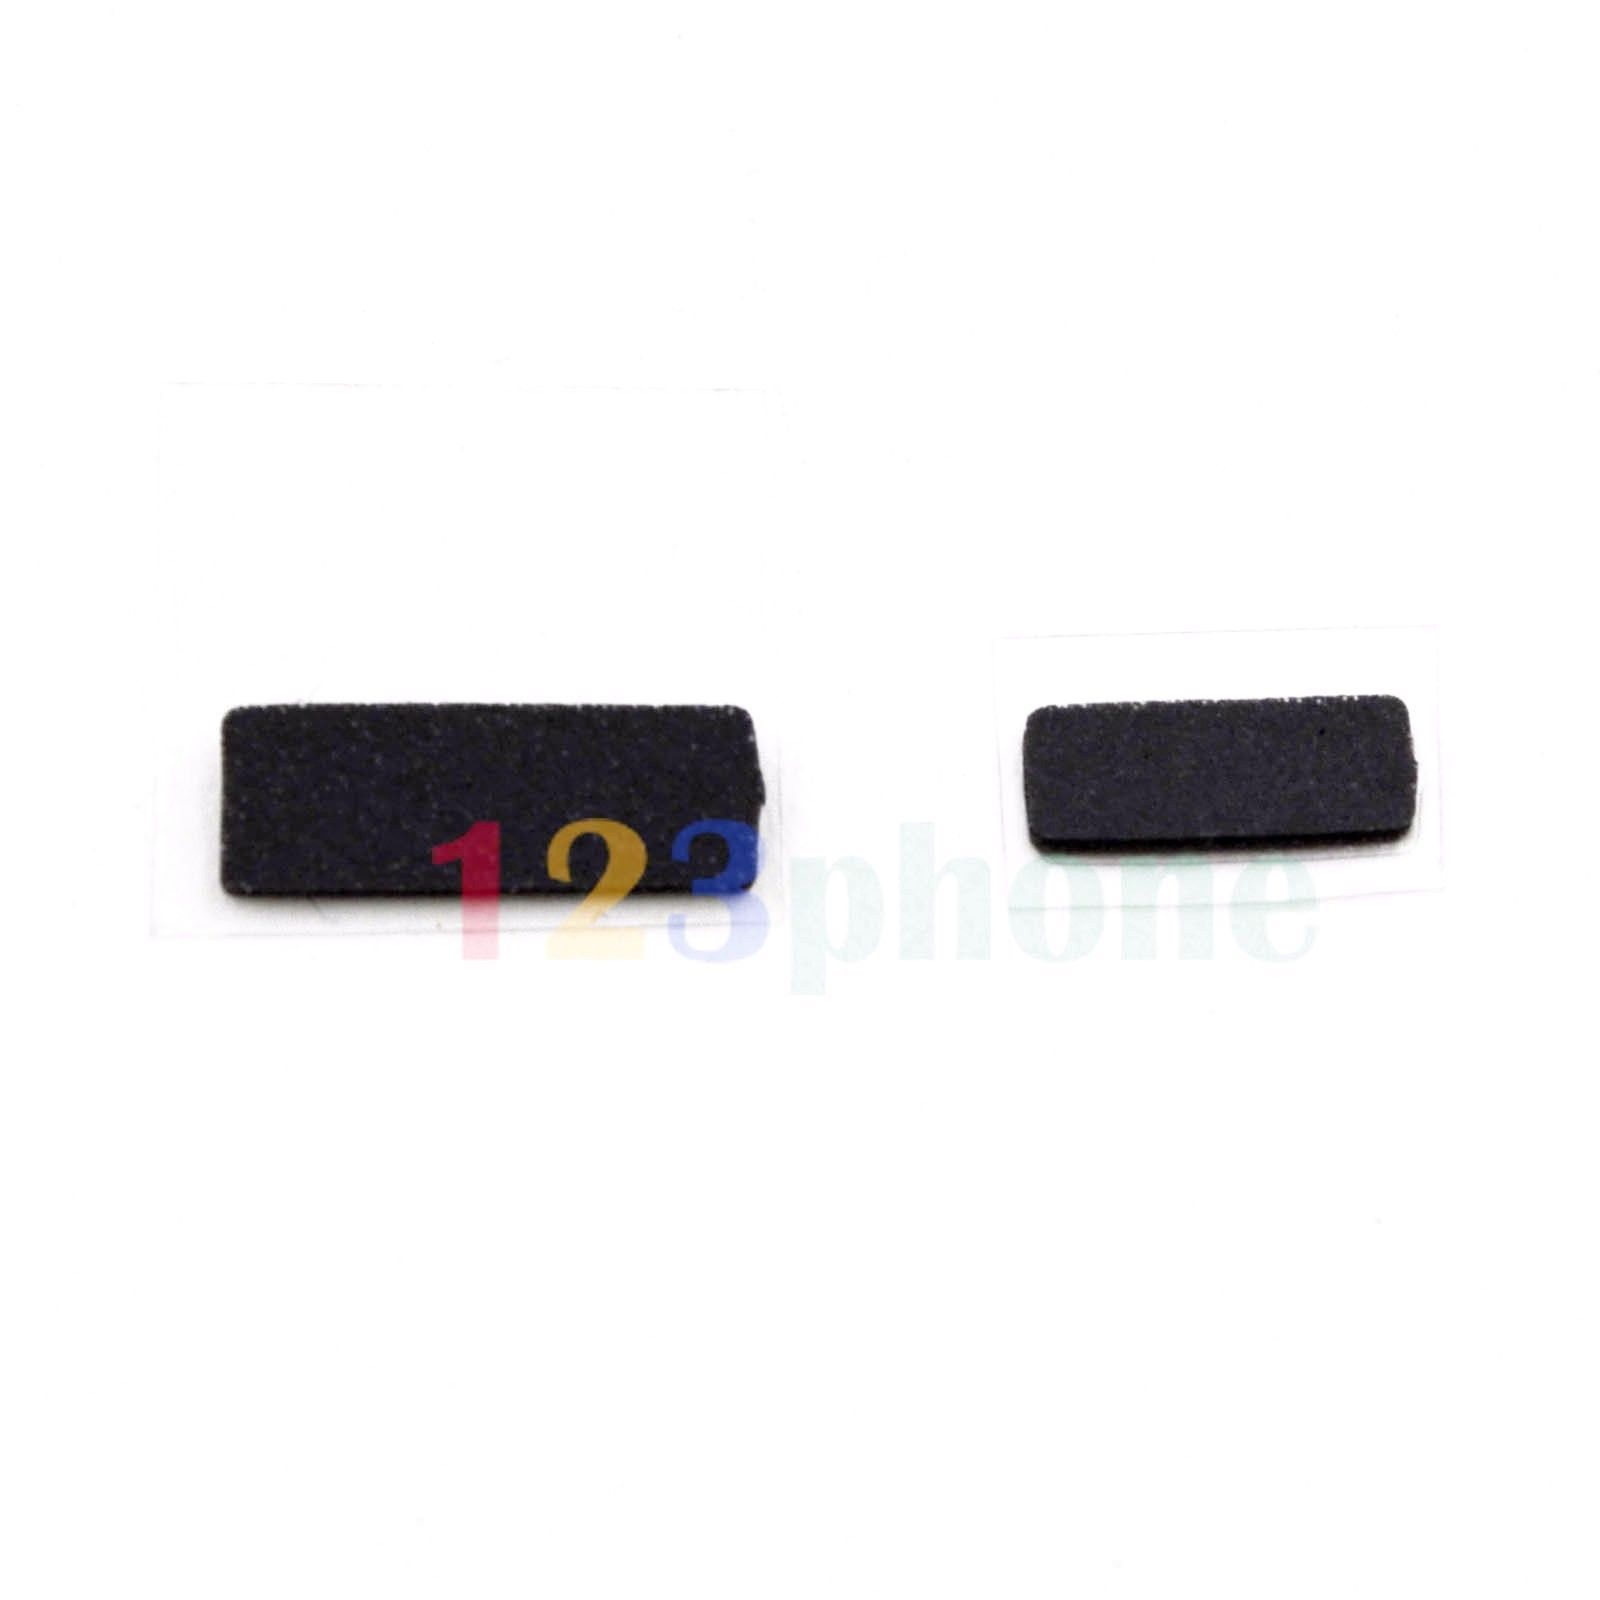 10 set lcd touch sensor sponge foam sticker for iphone 5s f 707